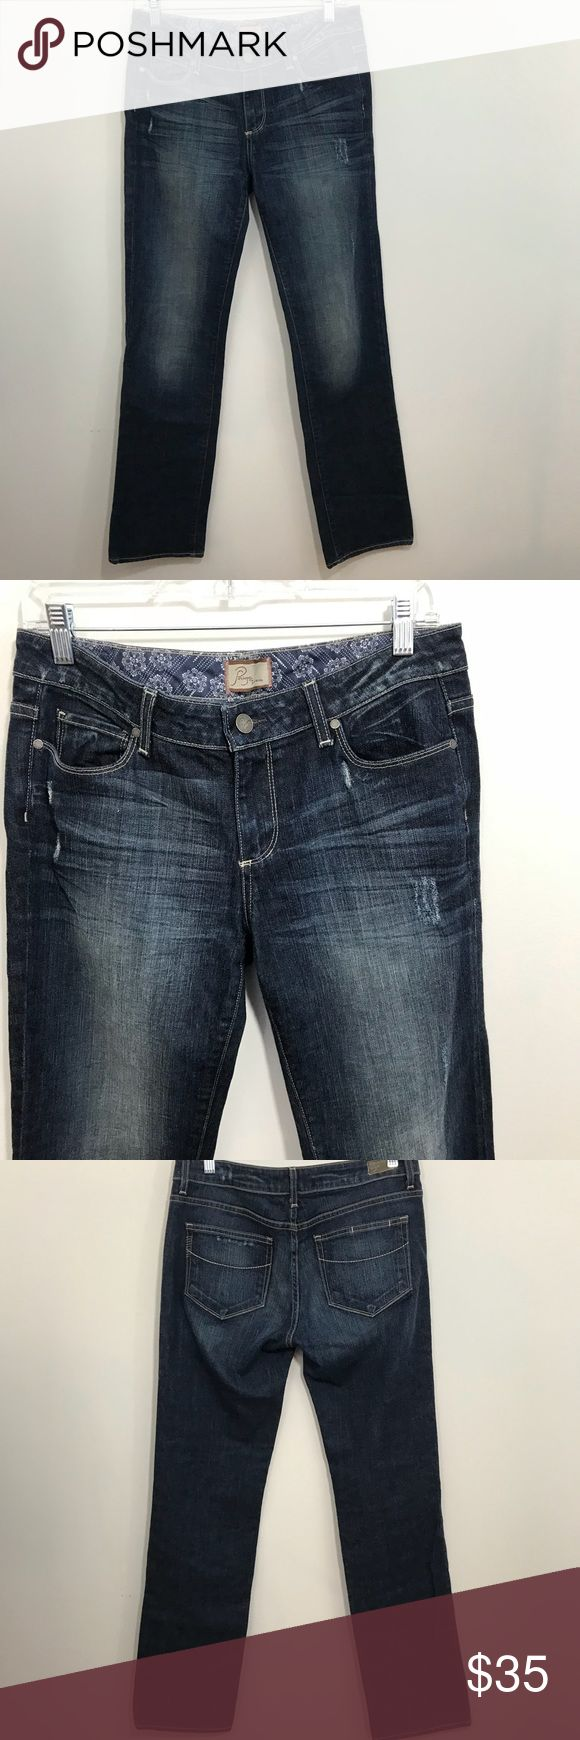 """Paige Jimmy Jimmy Distressed Boyfriend Jeans Sz 27 This is a Pair of Women's Mid Rise Slouchy Fit Straight Leg distressed Boyfriend Jeans by Paige Premium Denim (Jimmy jimmy)  Signature Paige Premium Denim Rear Pocket Design with """"Hidden"""" Credit Card Pocket and Brand Logo Hash Marks Signature Paige Premium Denim Brand Logo Leather Patch on Waistband Approximate measurements are 34"""" waist and 33"""" length unrolled. PAIGE Jeans Boyfriend"""